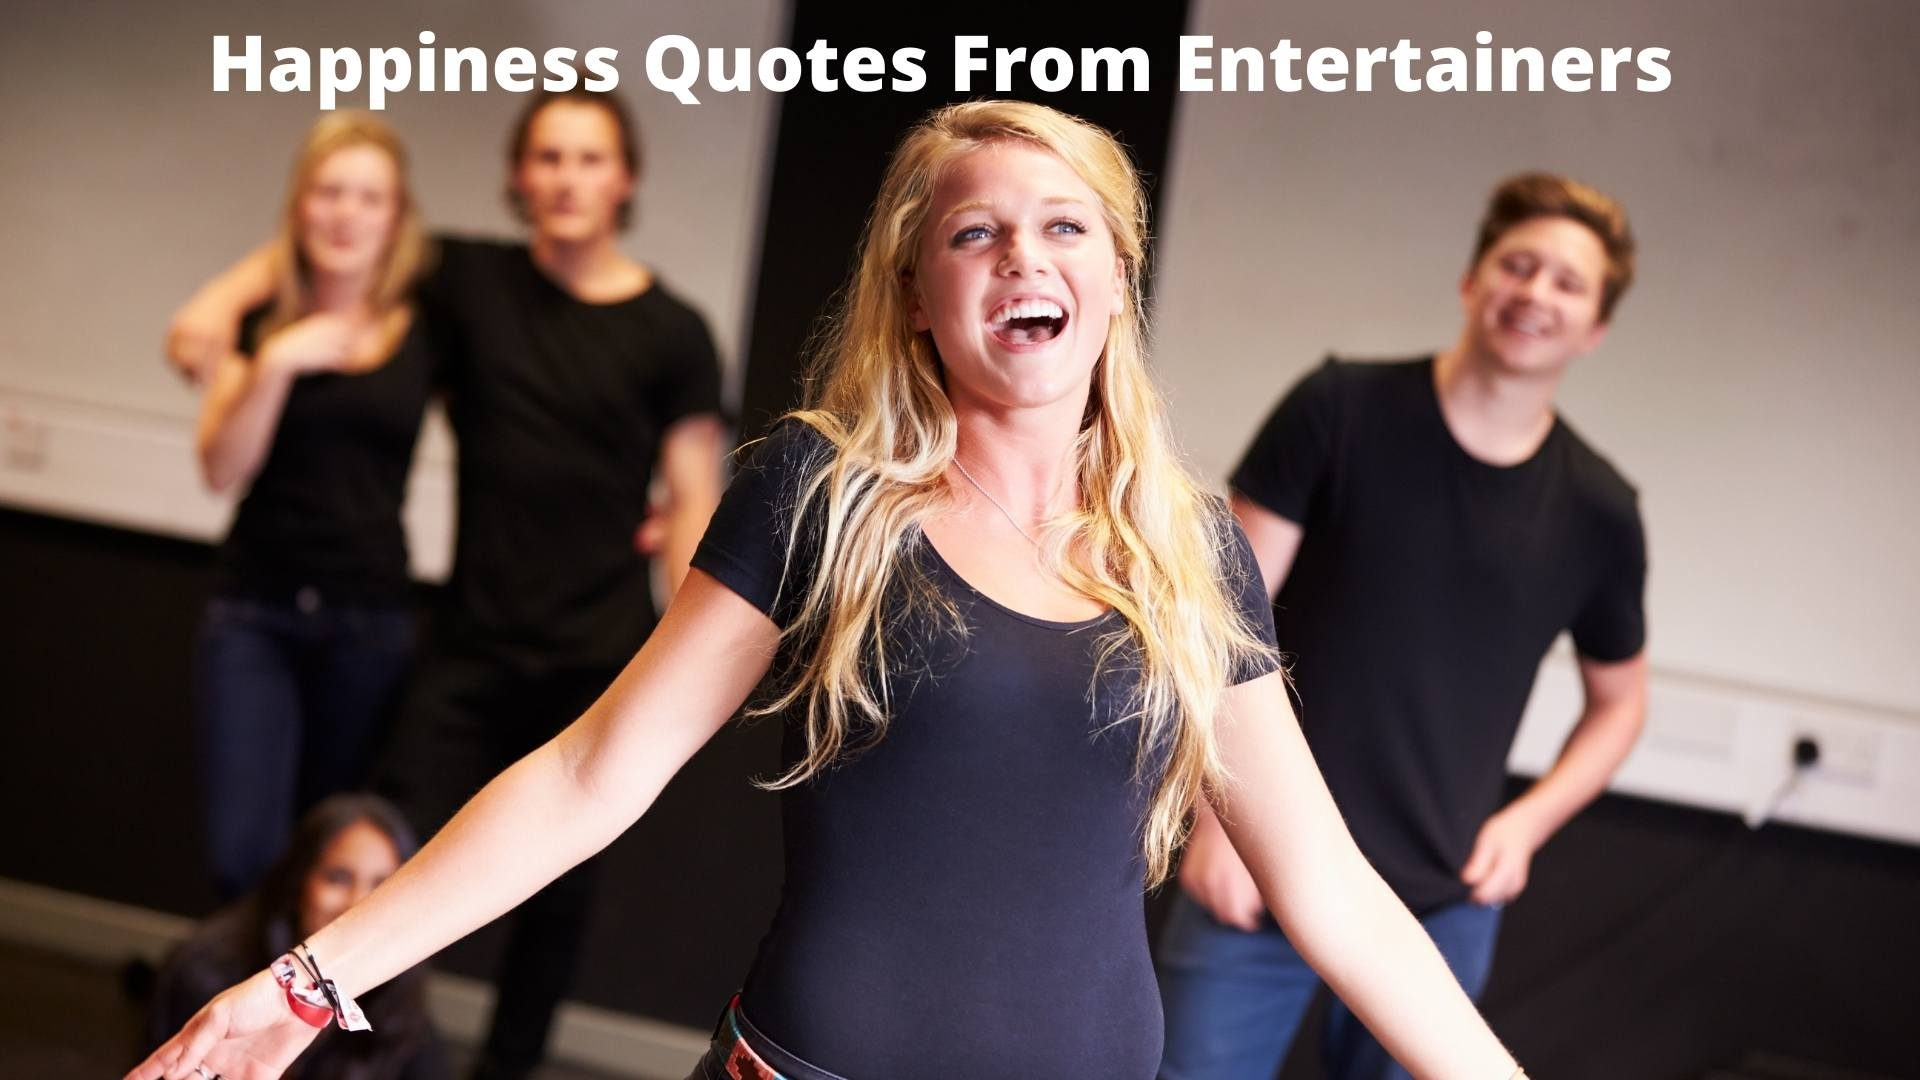 short happiness quotes from entertainers